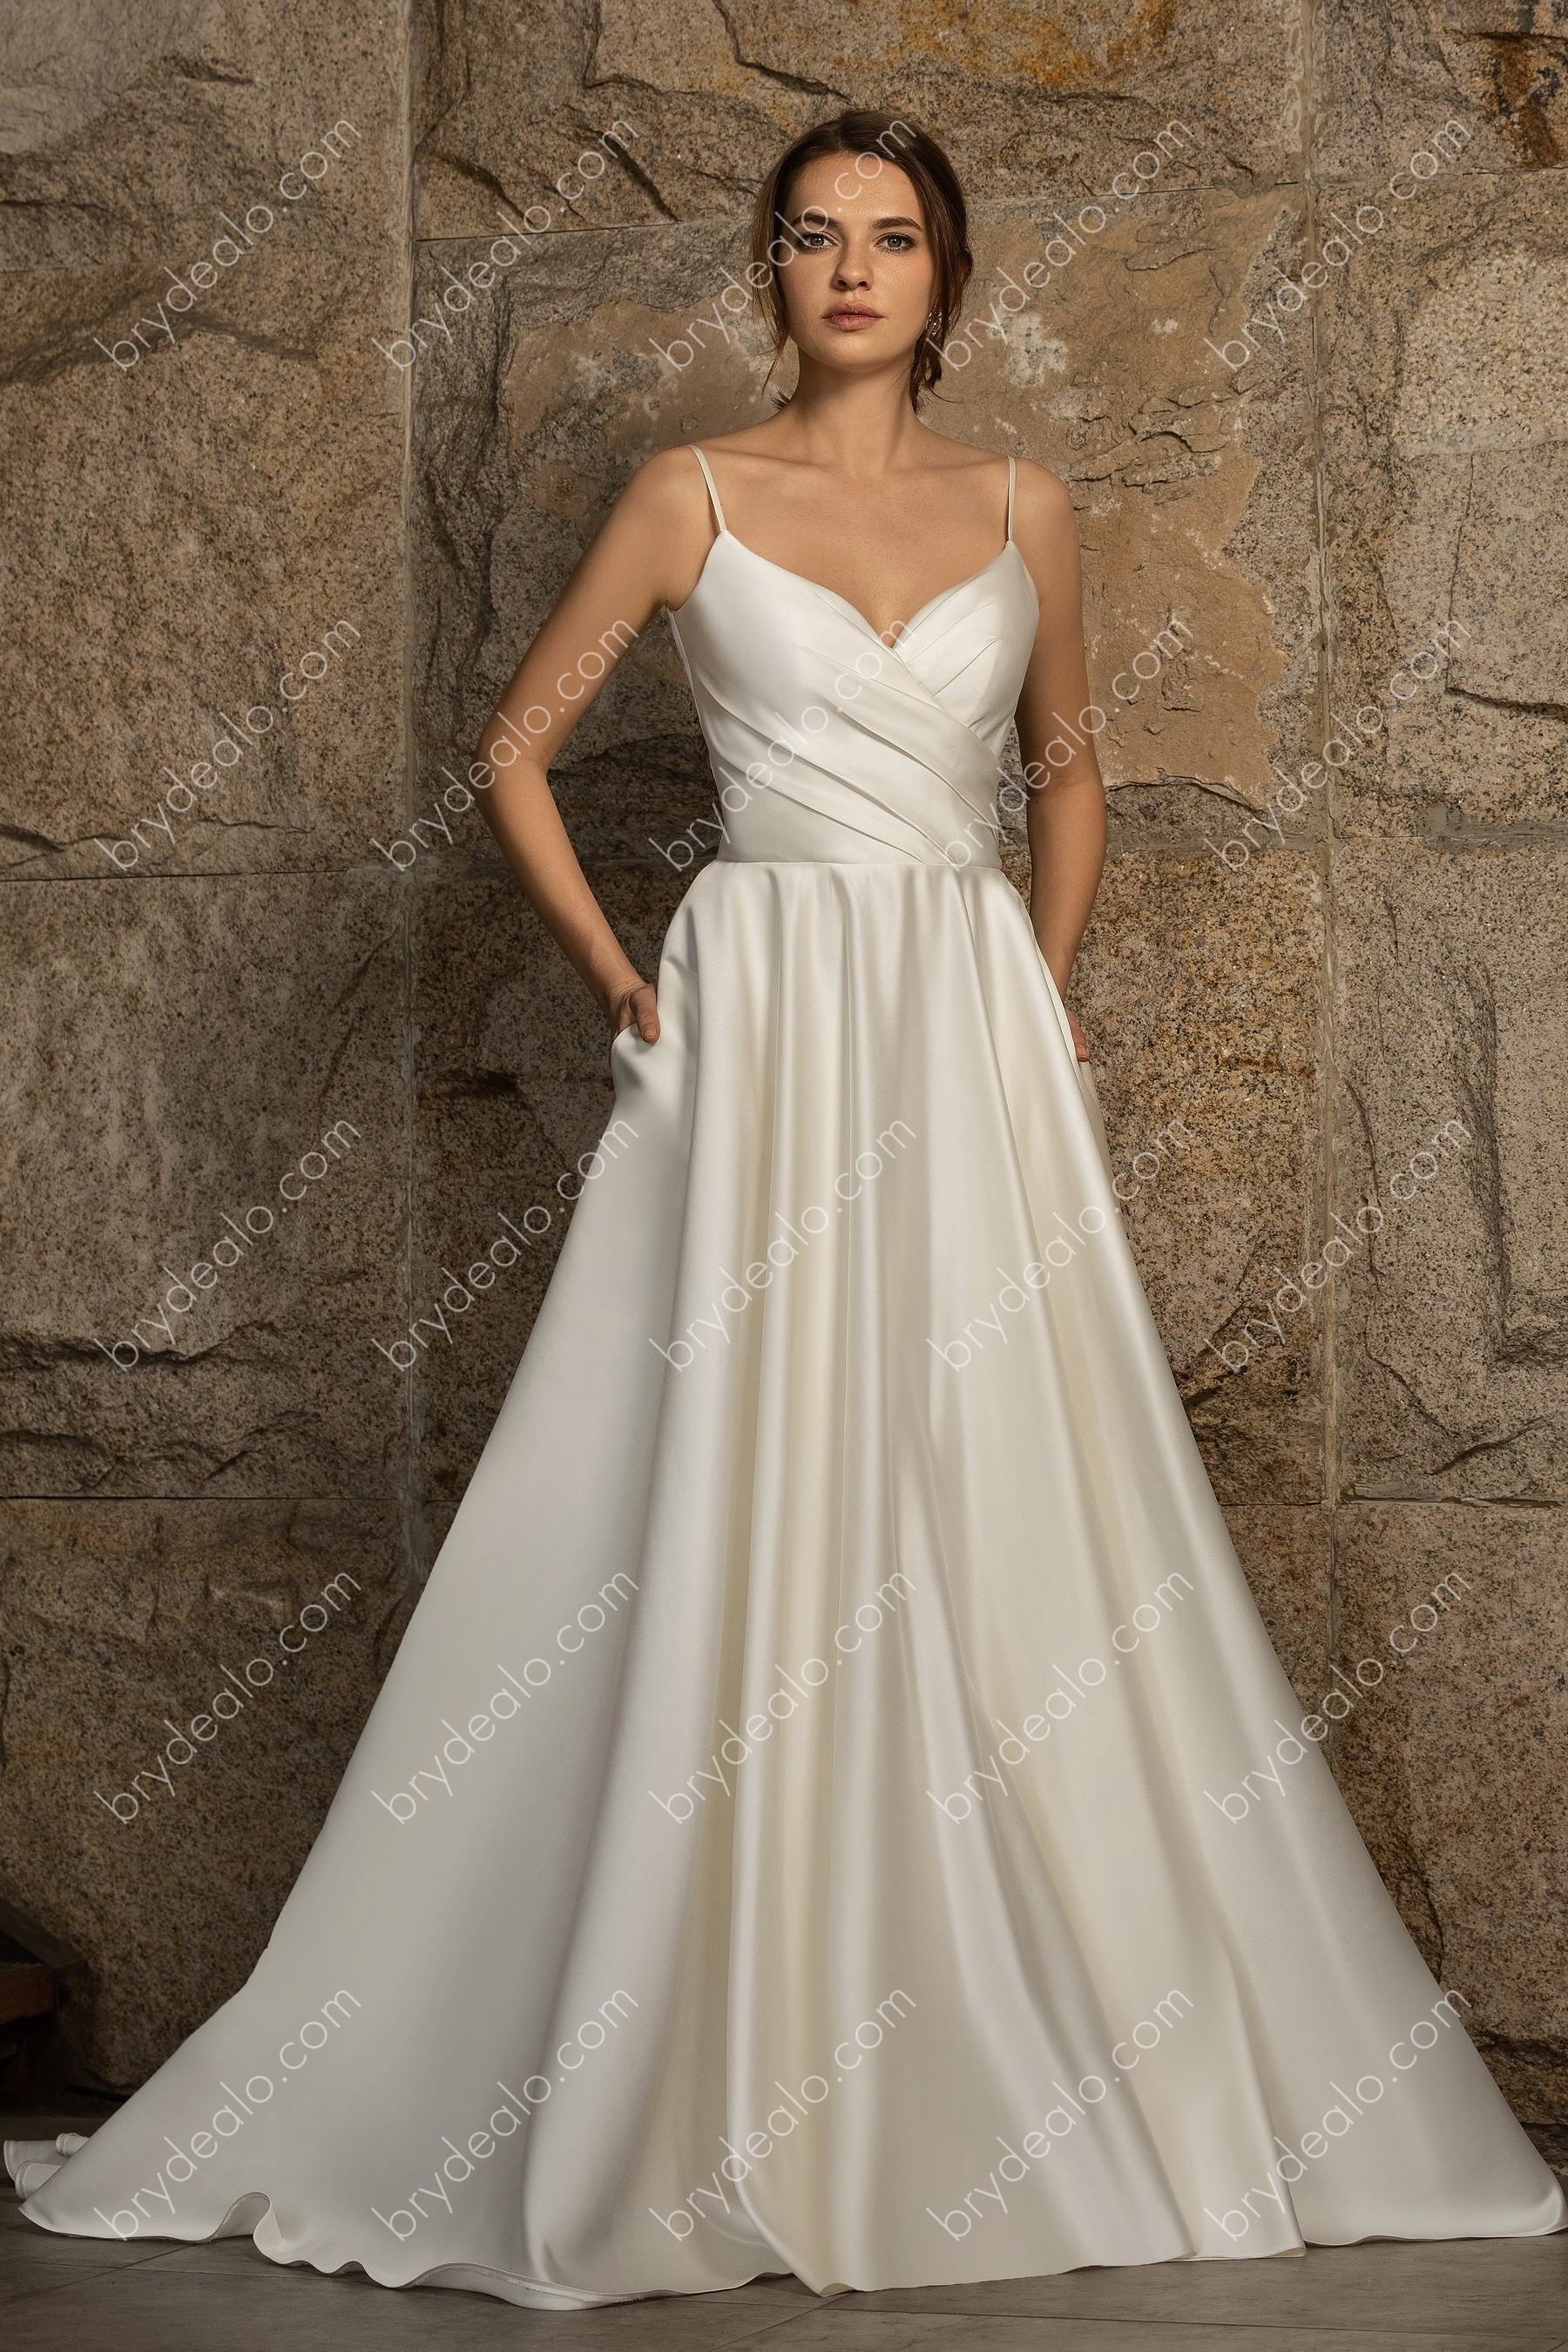 Classic Satin Spaghetti Strap Wedding Ball Gown With Pockets